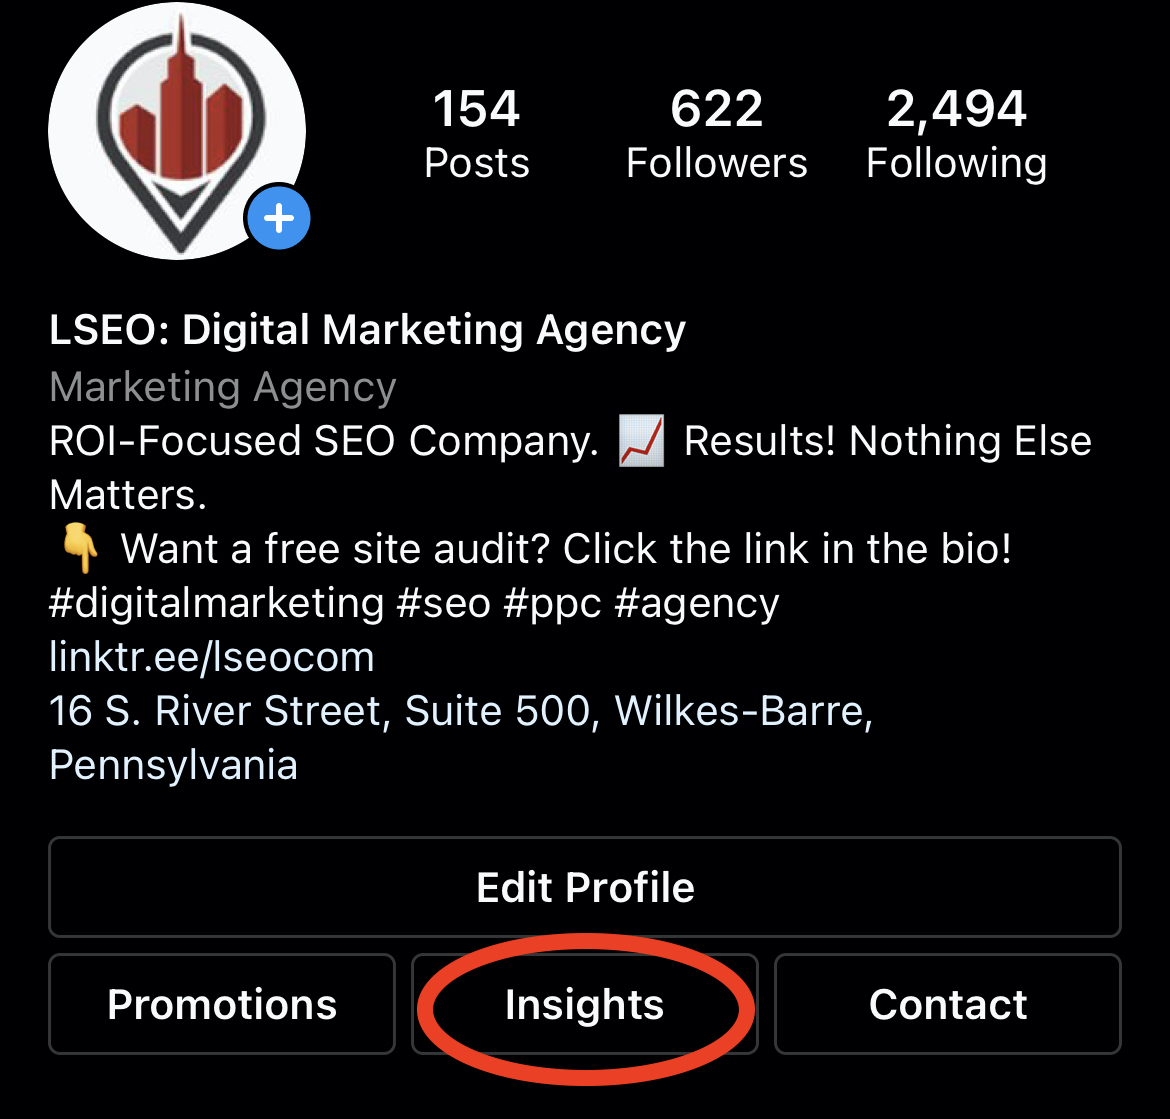 The Instagram Insights Button On LSEO's Profile